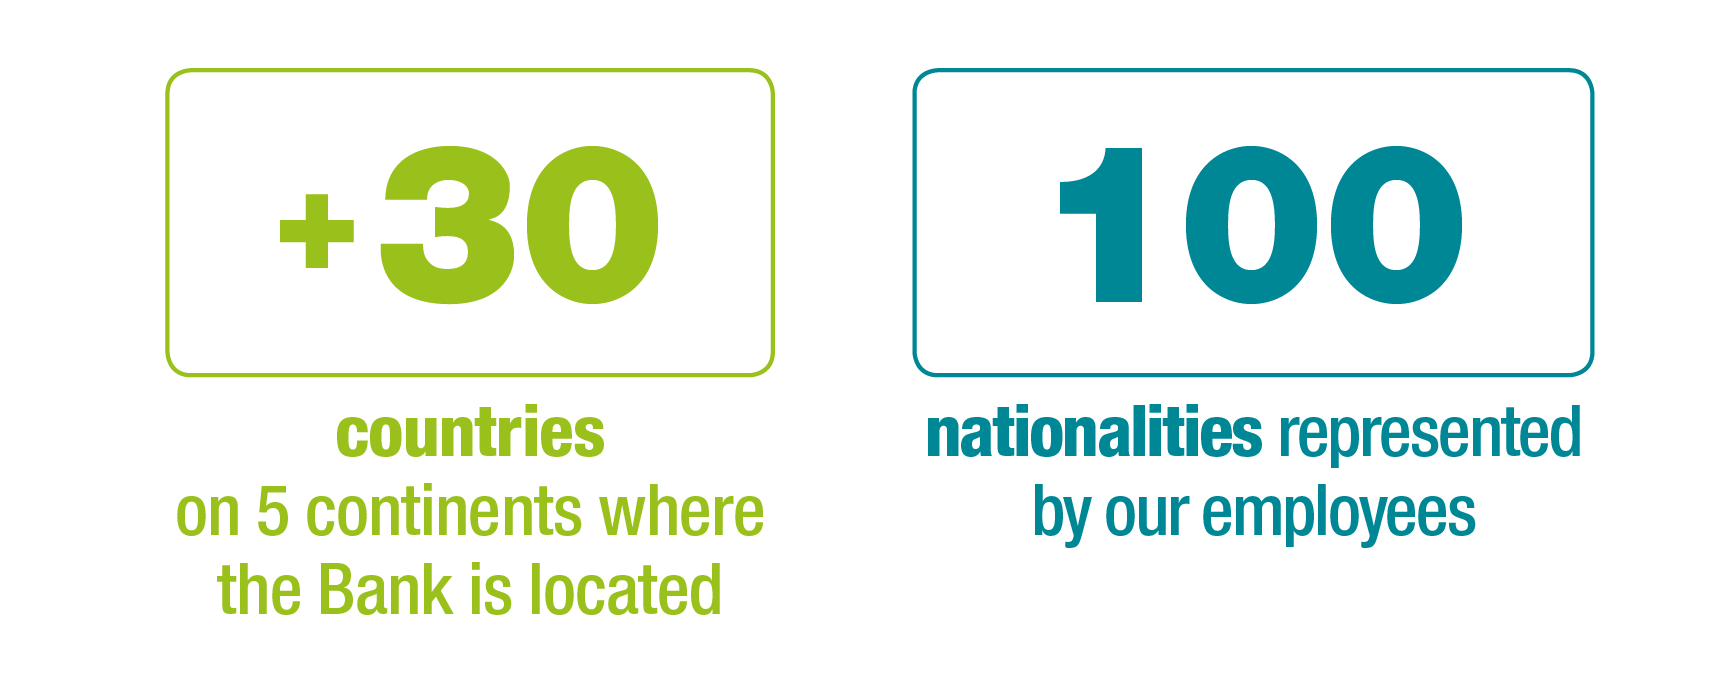 30+ countries on 5 continents, 100 nationalities represented by our employees